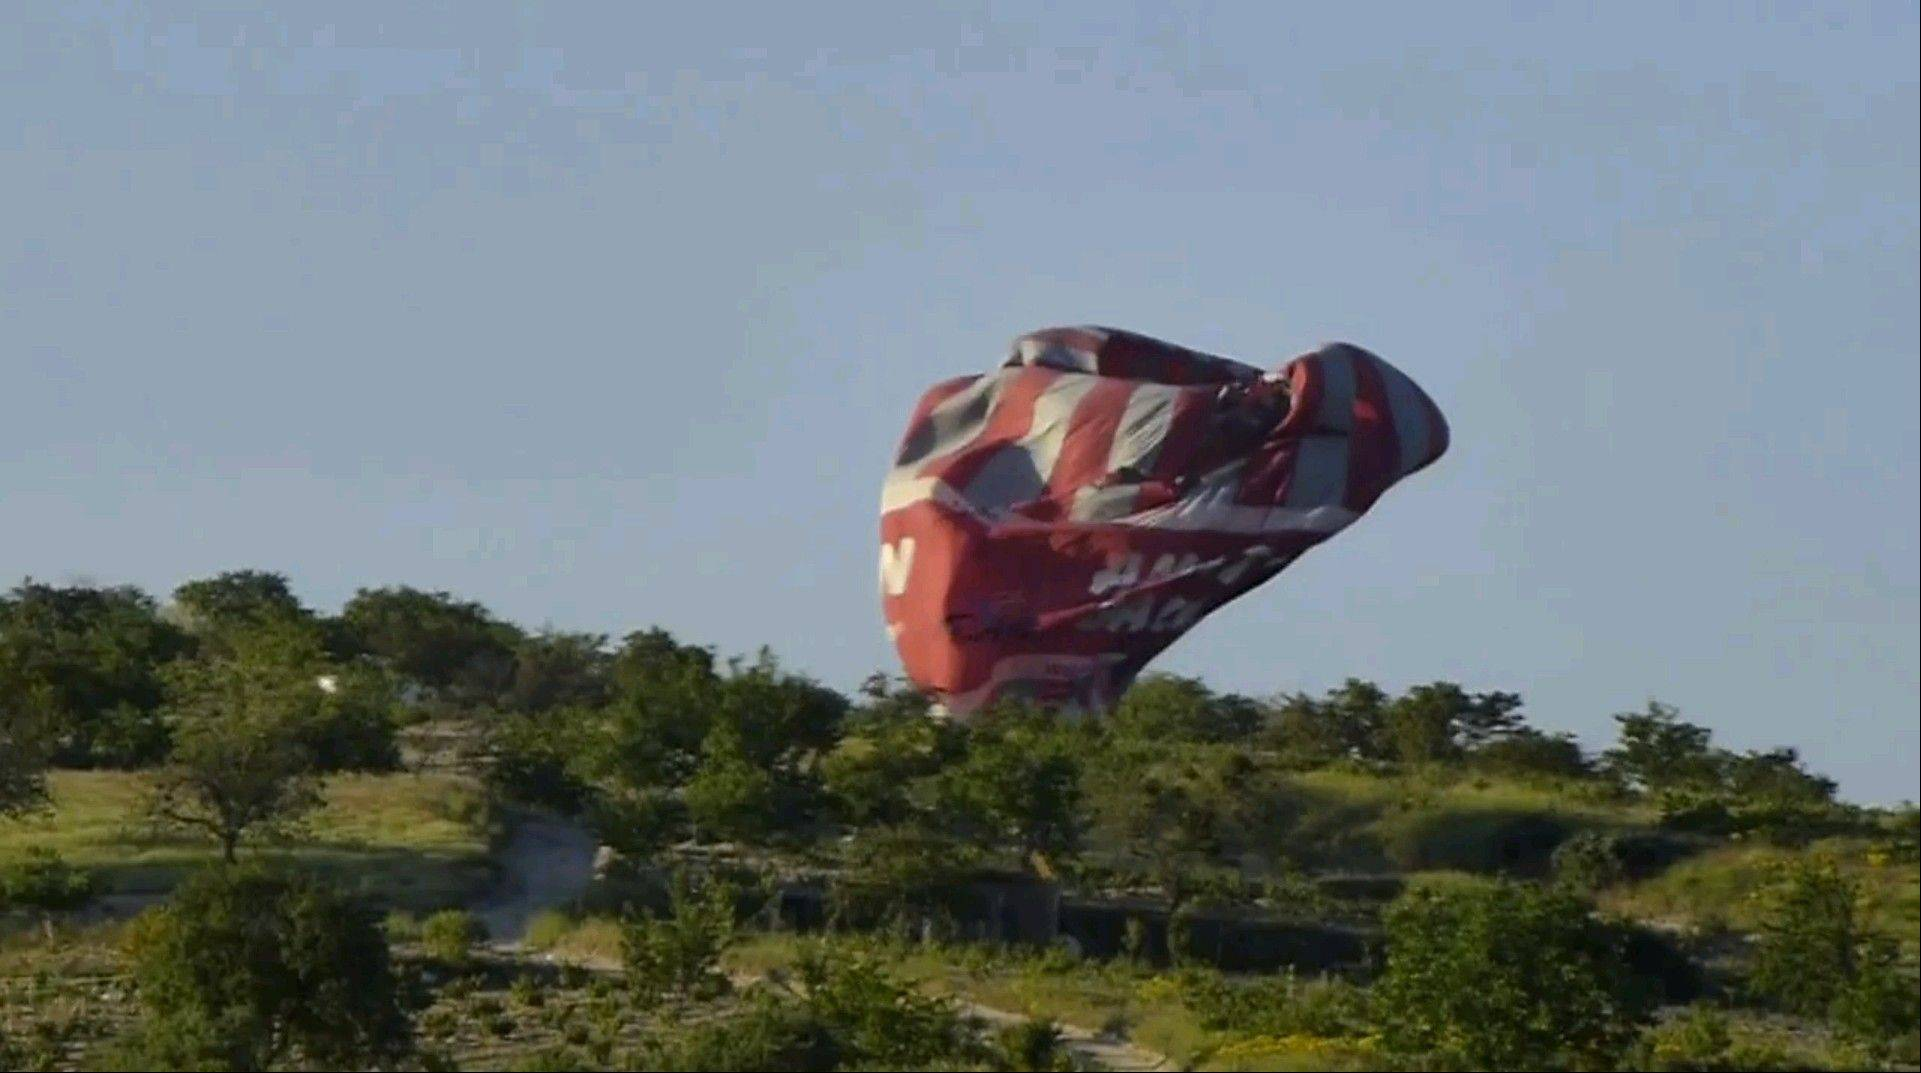 Two hot air balloons collided in midair during a sightseeing tour of volcanic rock formations in Turkey on Monday, causing one of them to crash to the ground, officials said. One Brazilian tourist was killed while 24 other people on board were injured.